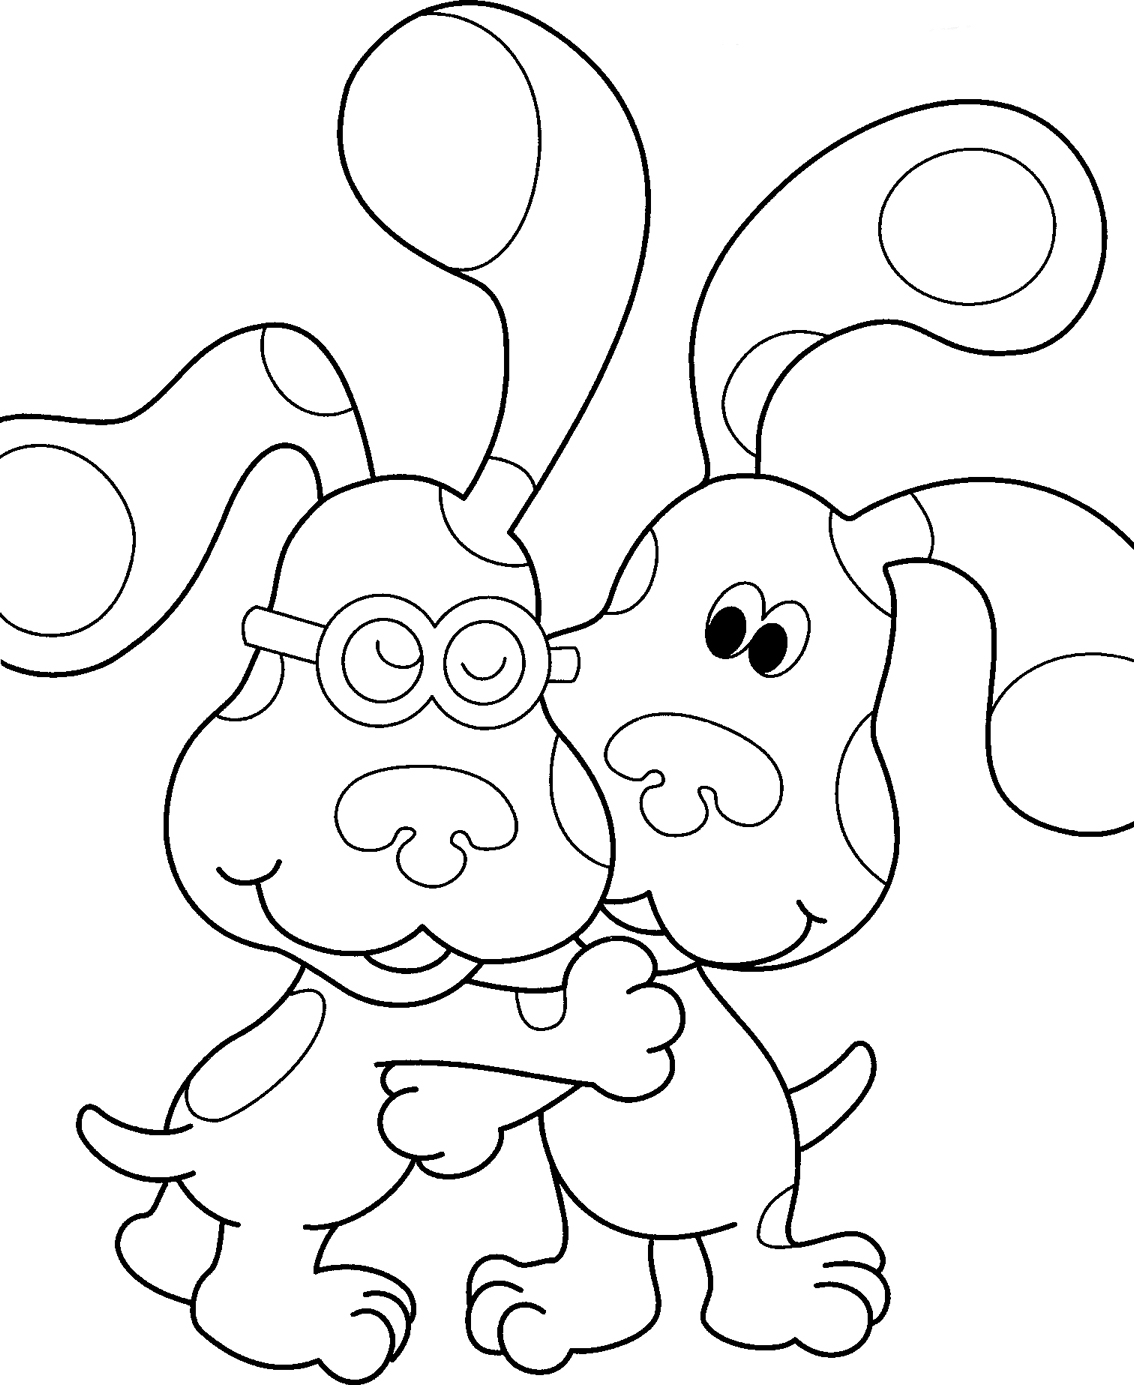 Free Printable Blues Clues Coloring Pages For Kids Colouring Pages Printable